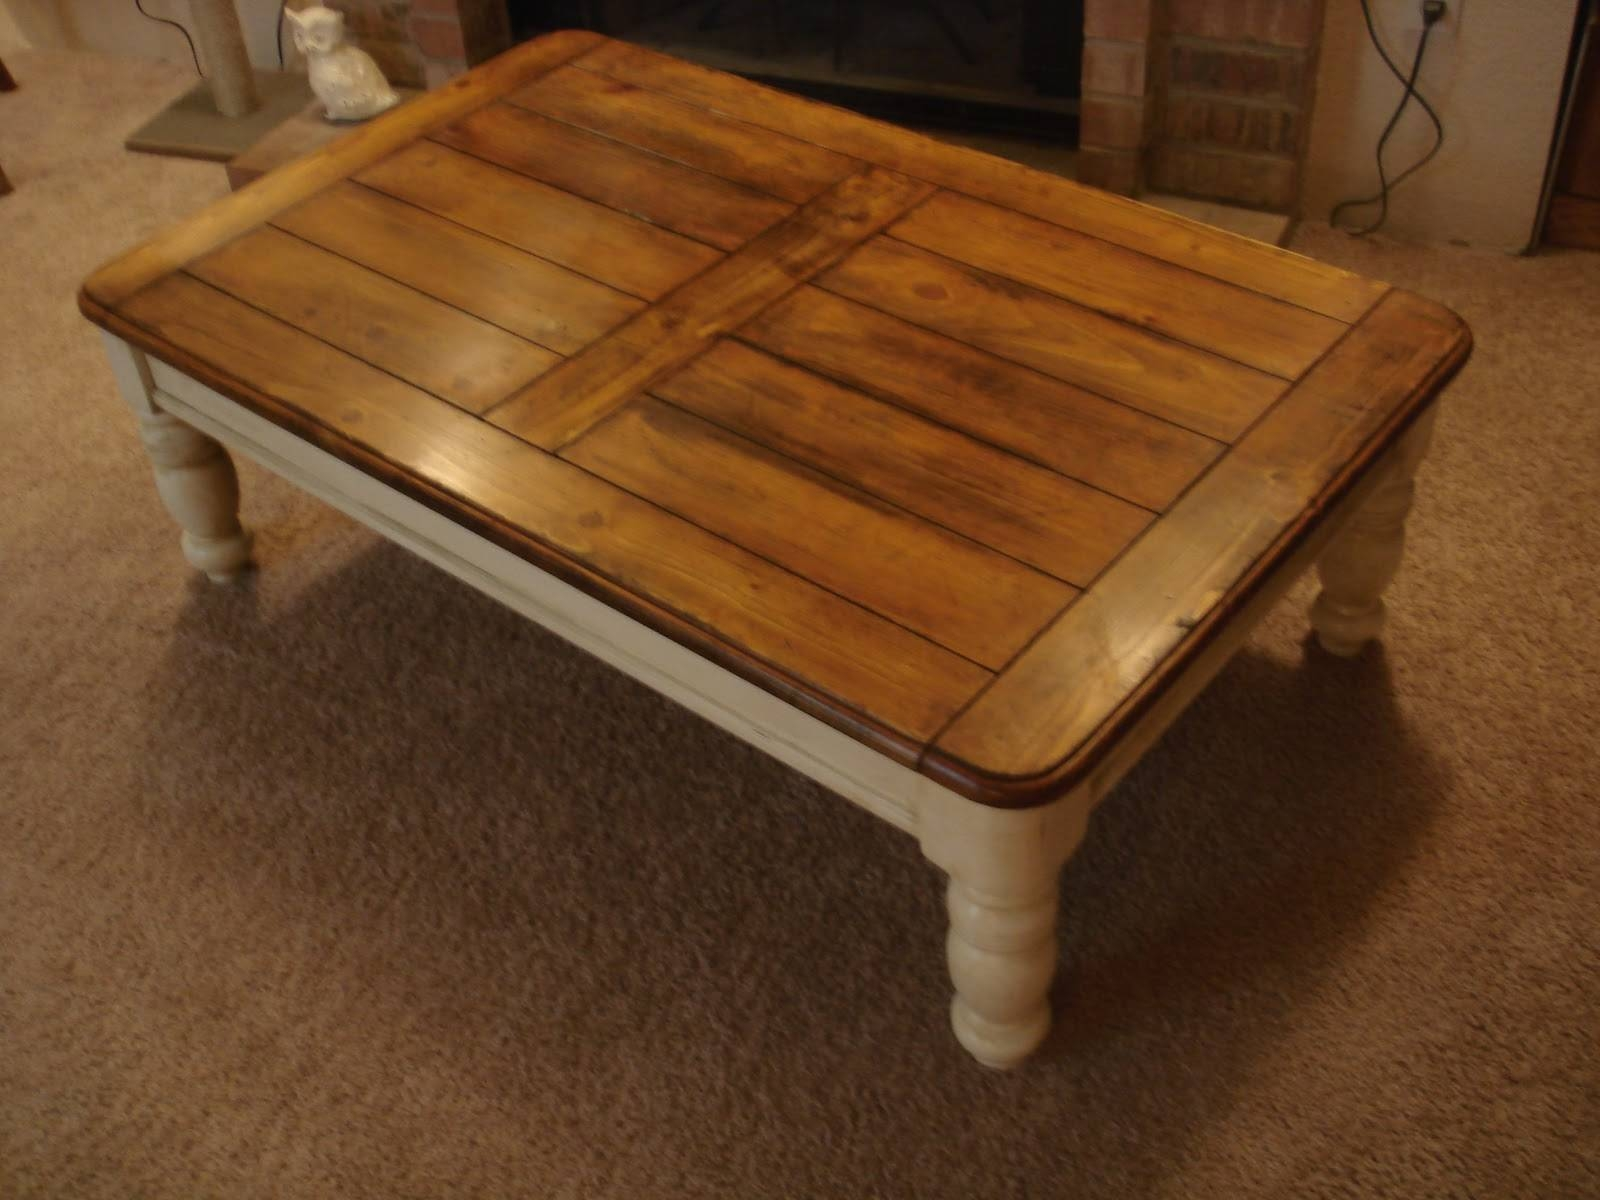 Awesome Distressed Square Coffee Table Large Coffee Tables throughout Large Square Wood Coffee Tables (Image 2 of 30)